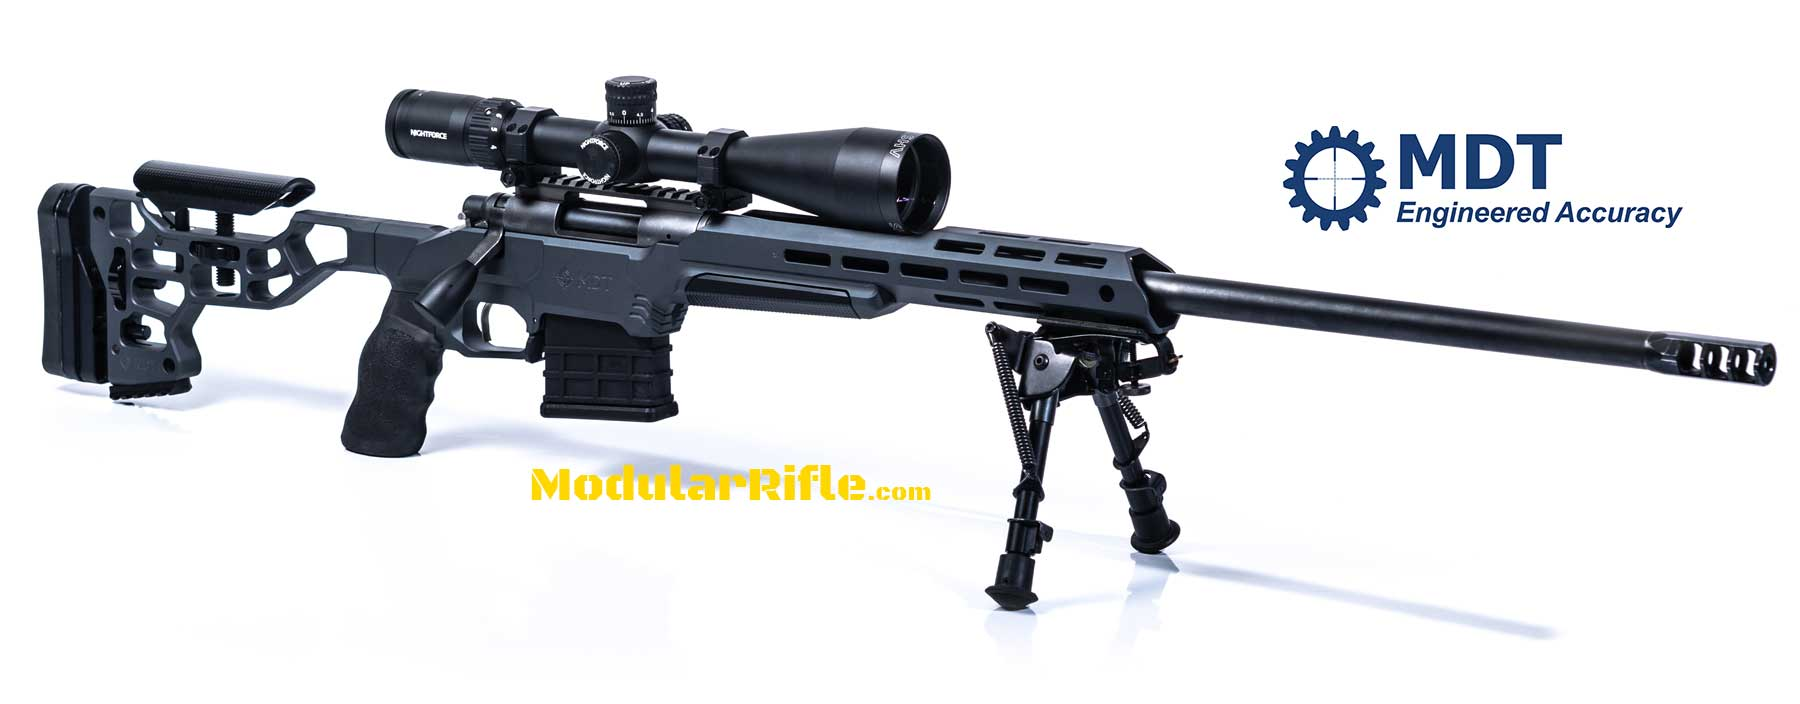 MDT ESS Chassis Installed on a Rifle